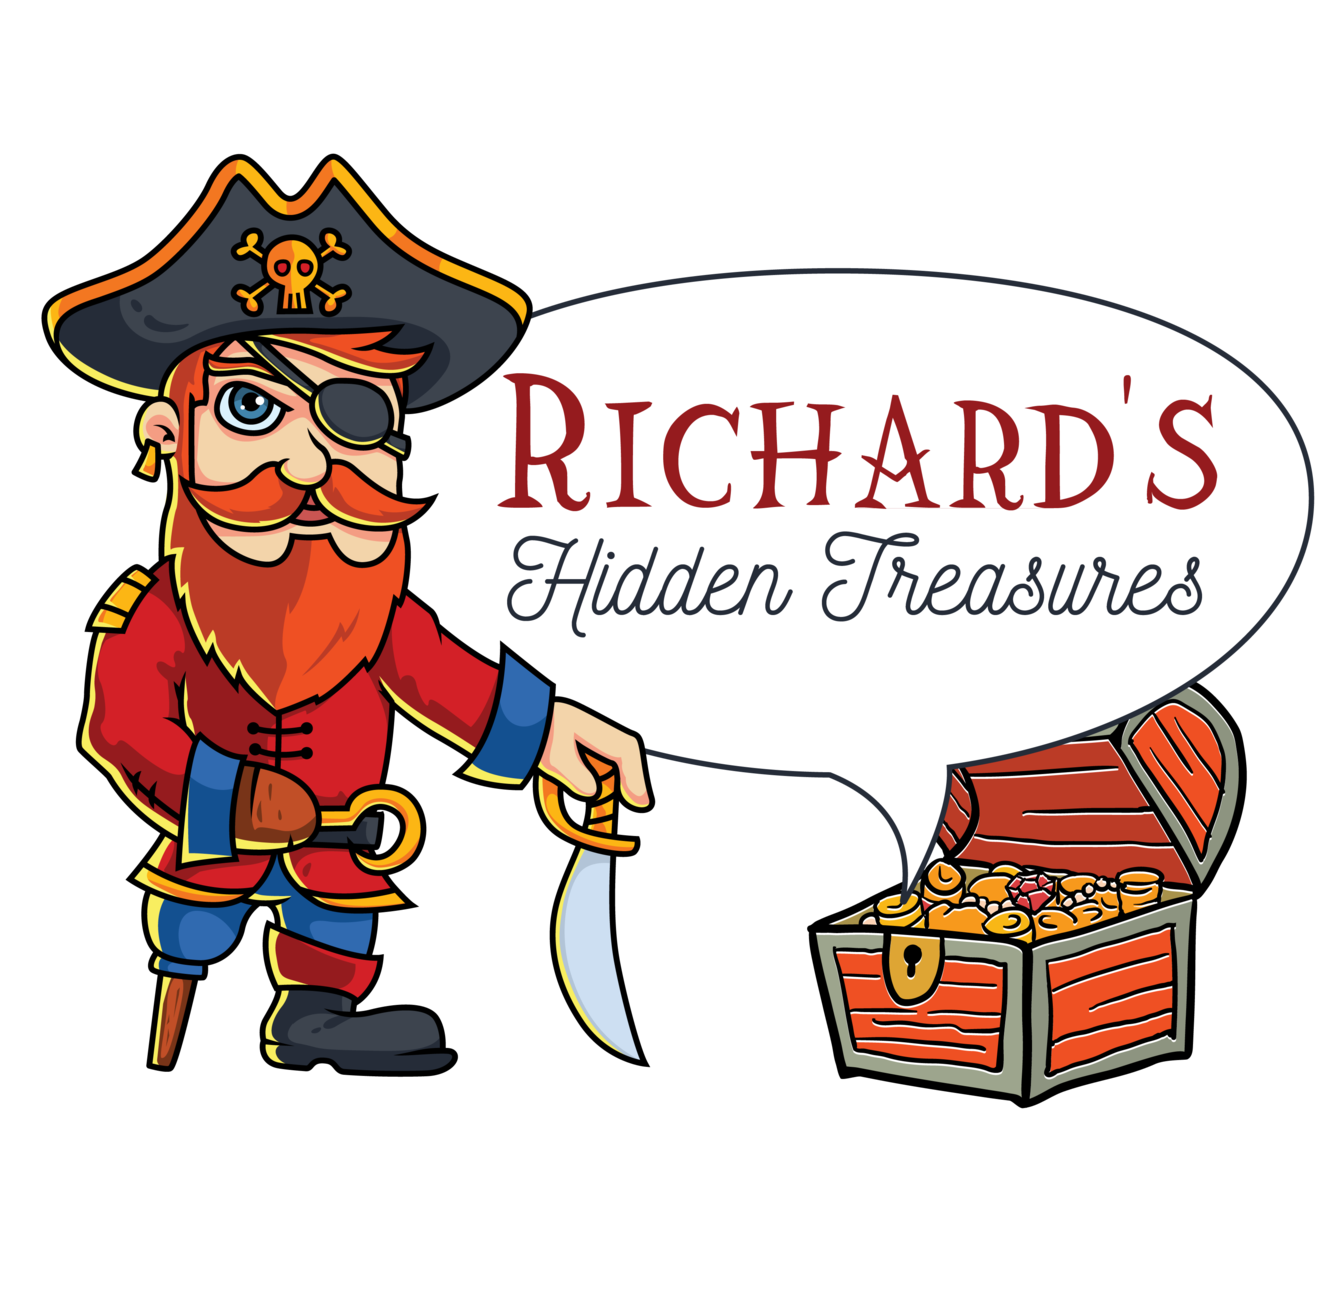 Richard's Hidden Treasures